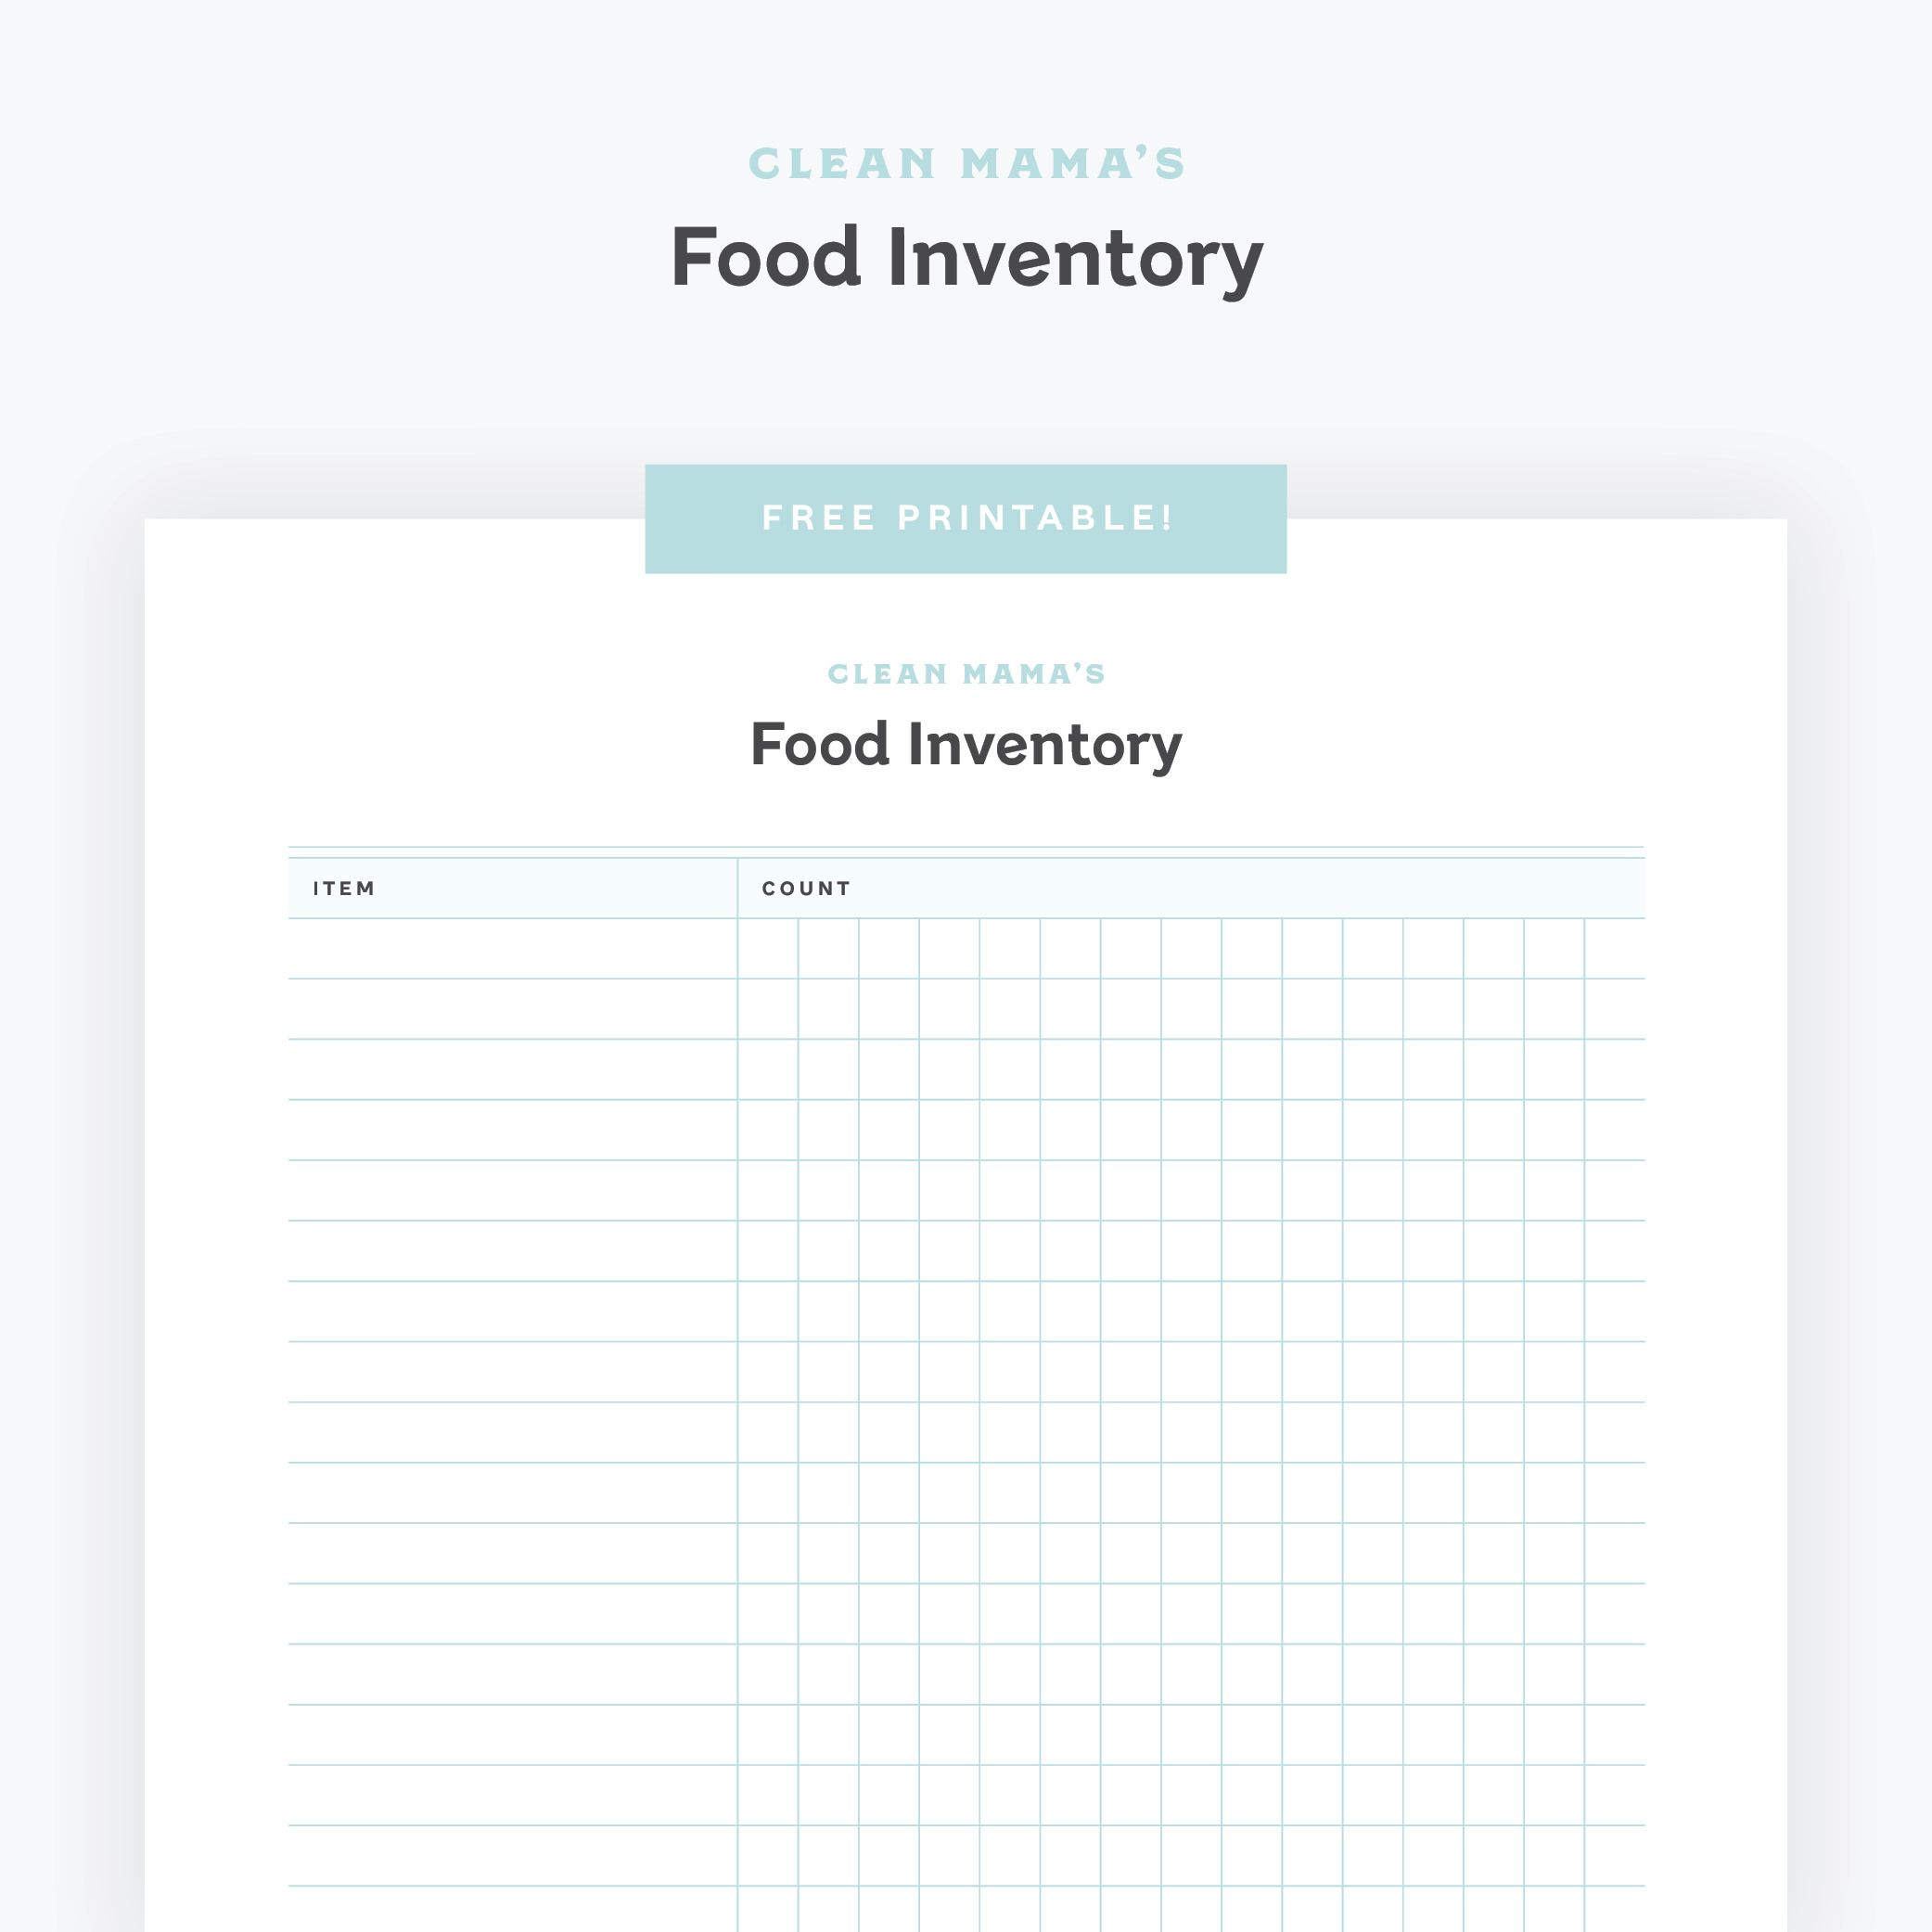 Free Printable Food Inventory Checklist Clean Mama In